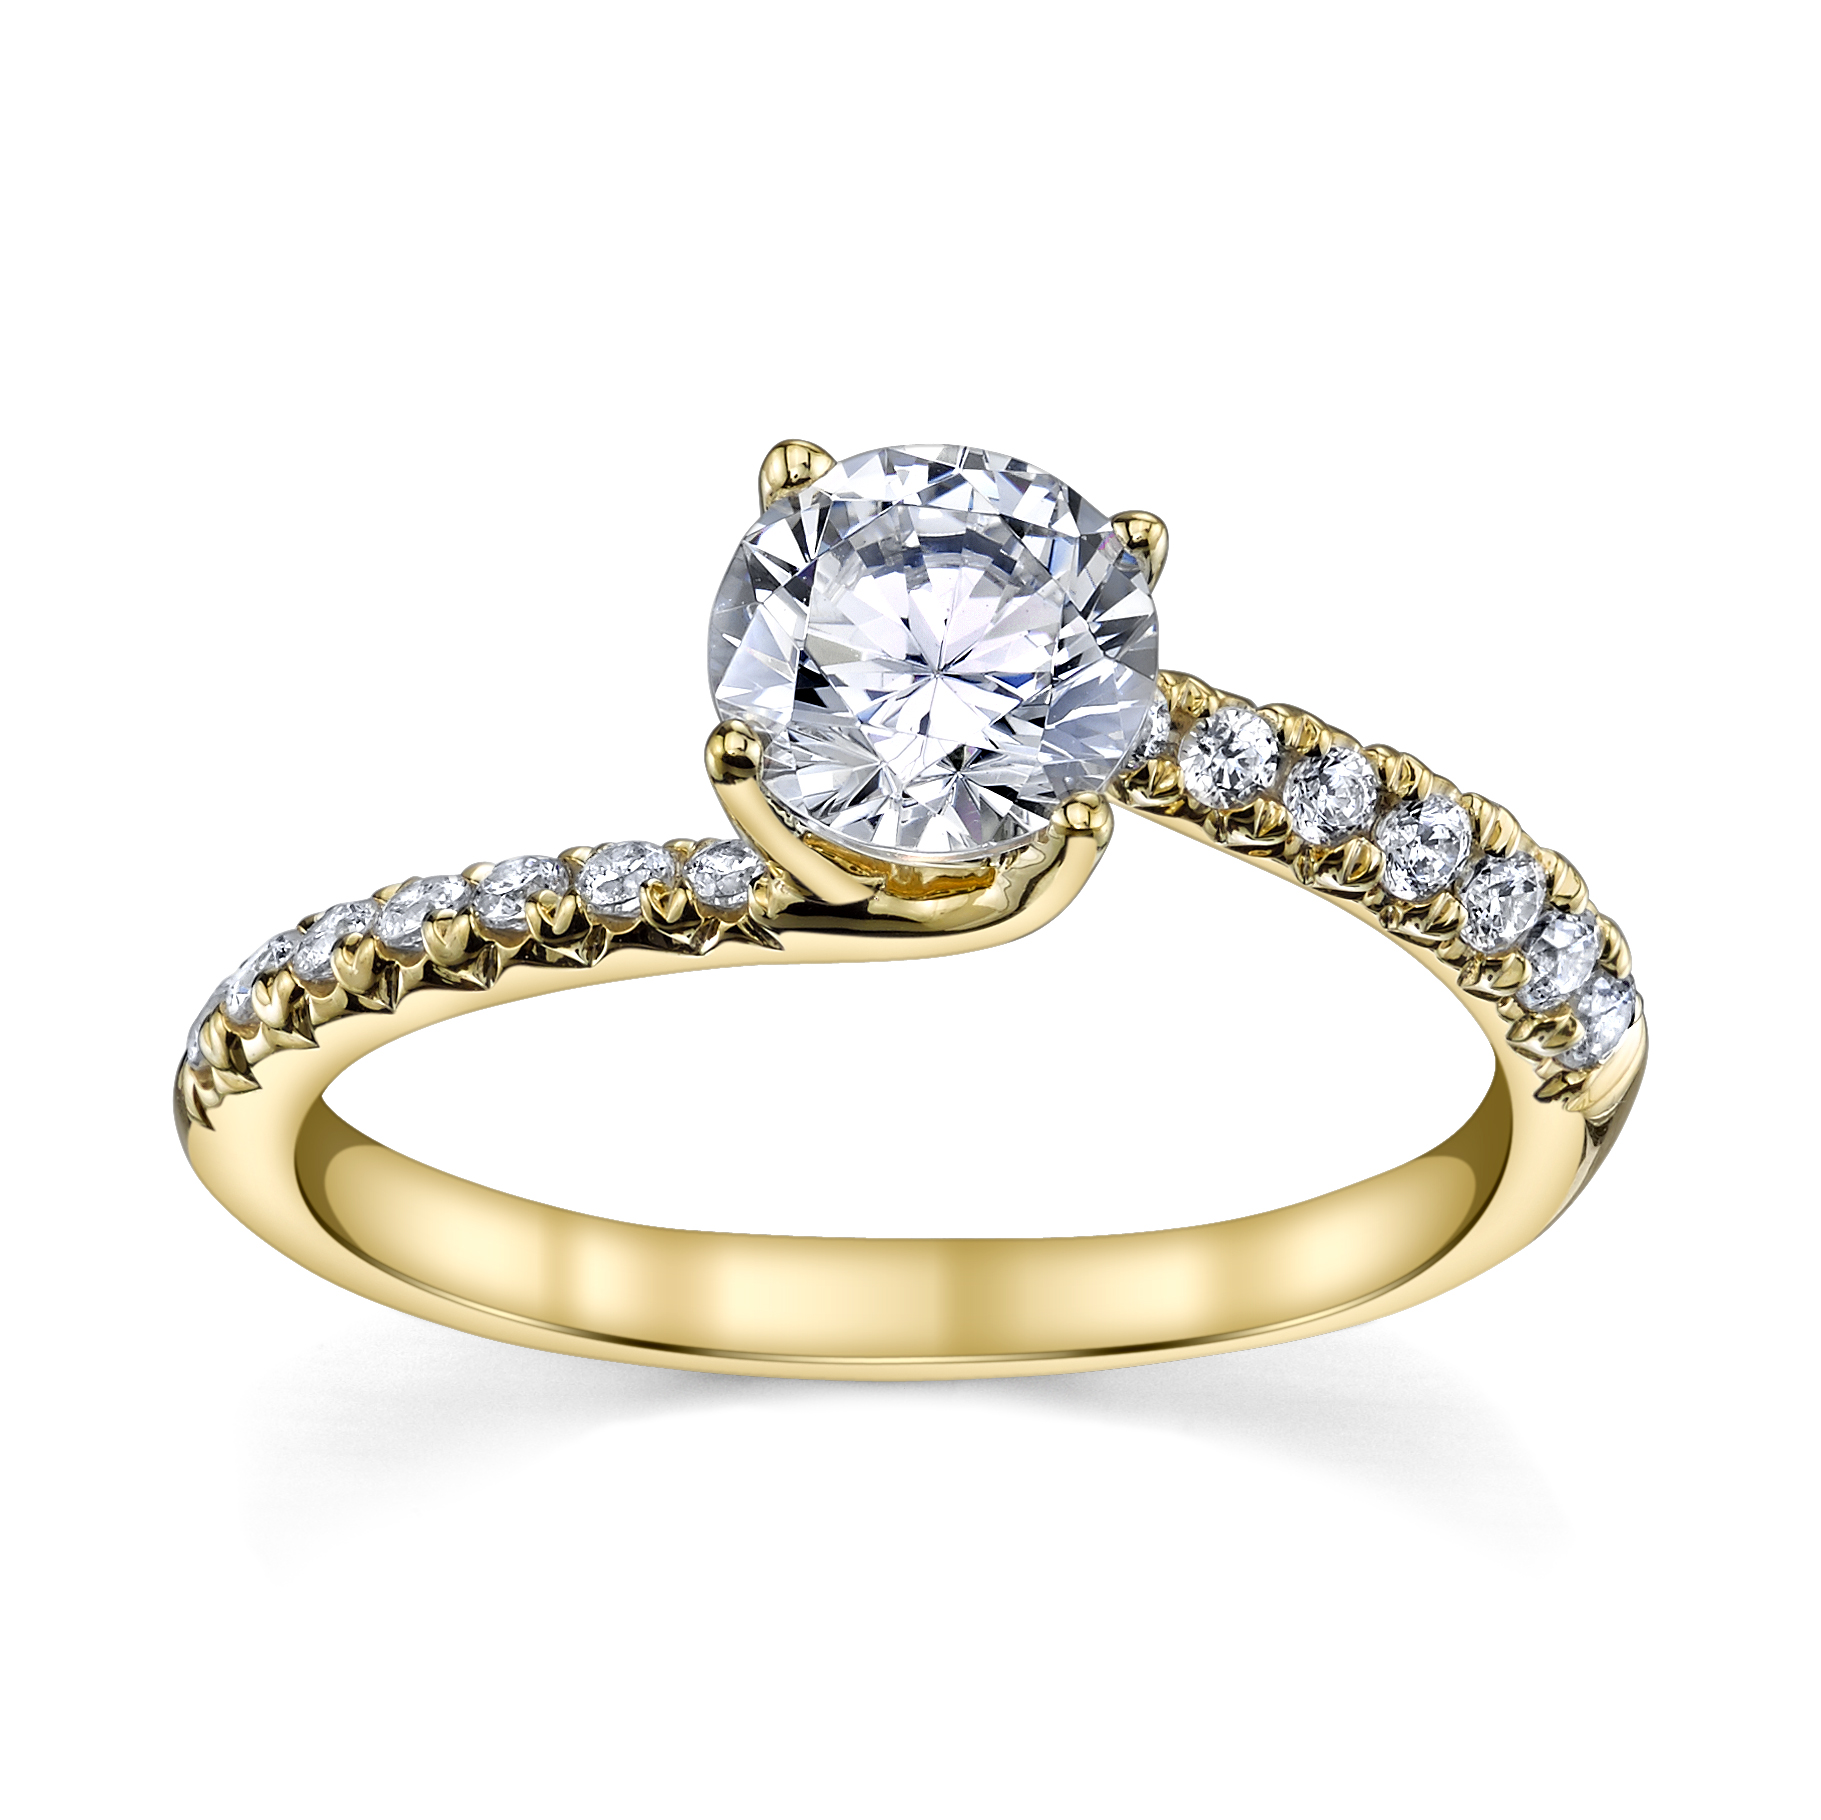 Beautiful 1.26CTW Diamond Engagement Ring in 14k Yellow Gold by